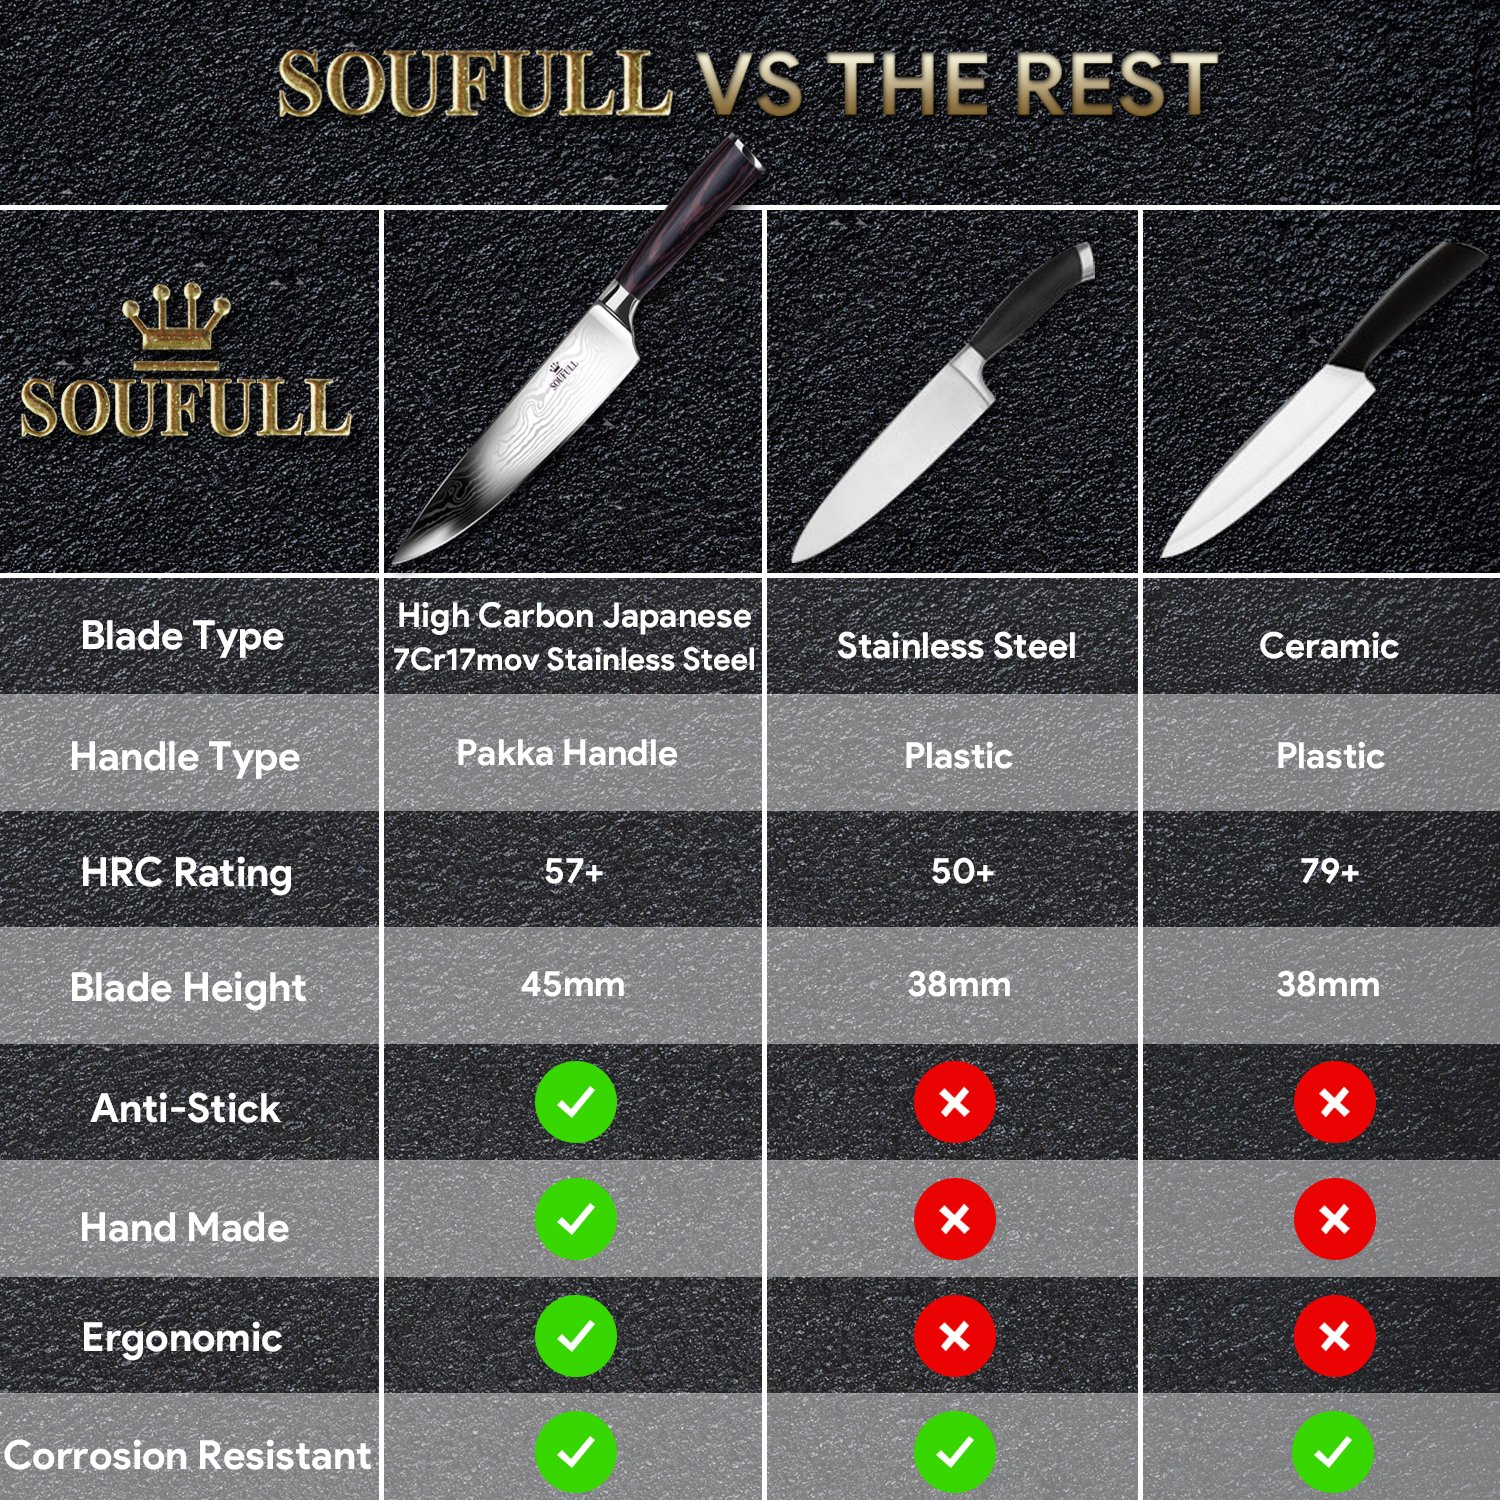 Soufull Chef Knife 8 inches Japanese Stainless Steel Gyutou Knife Professional Kitchen Knife with Ergonomic Handle by Soufull (Image #3)